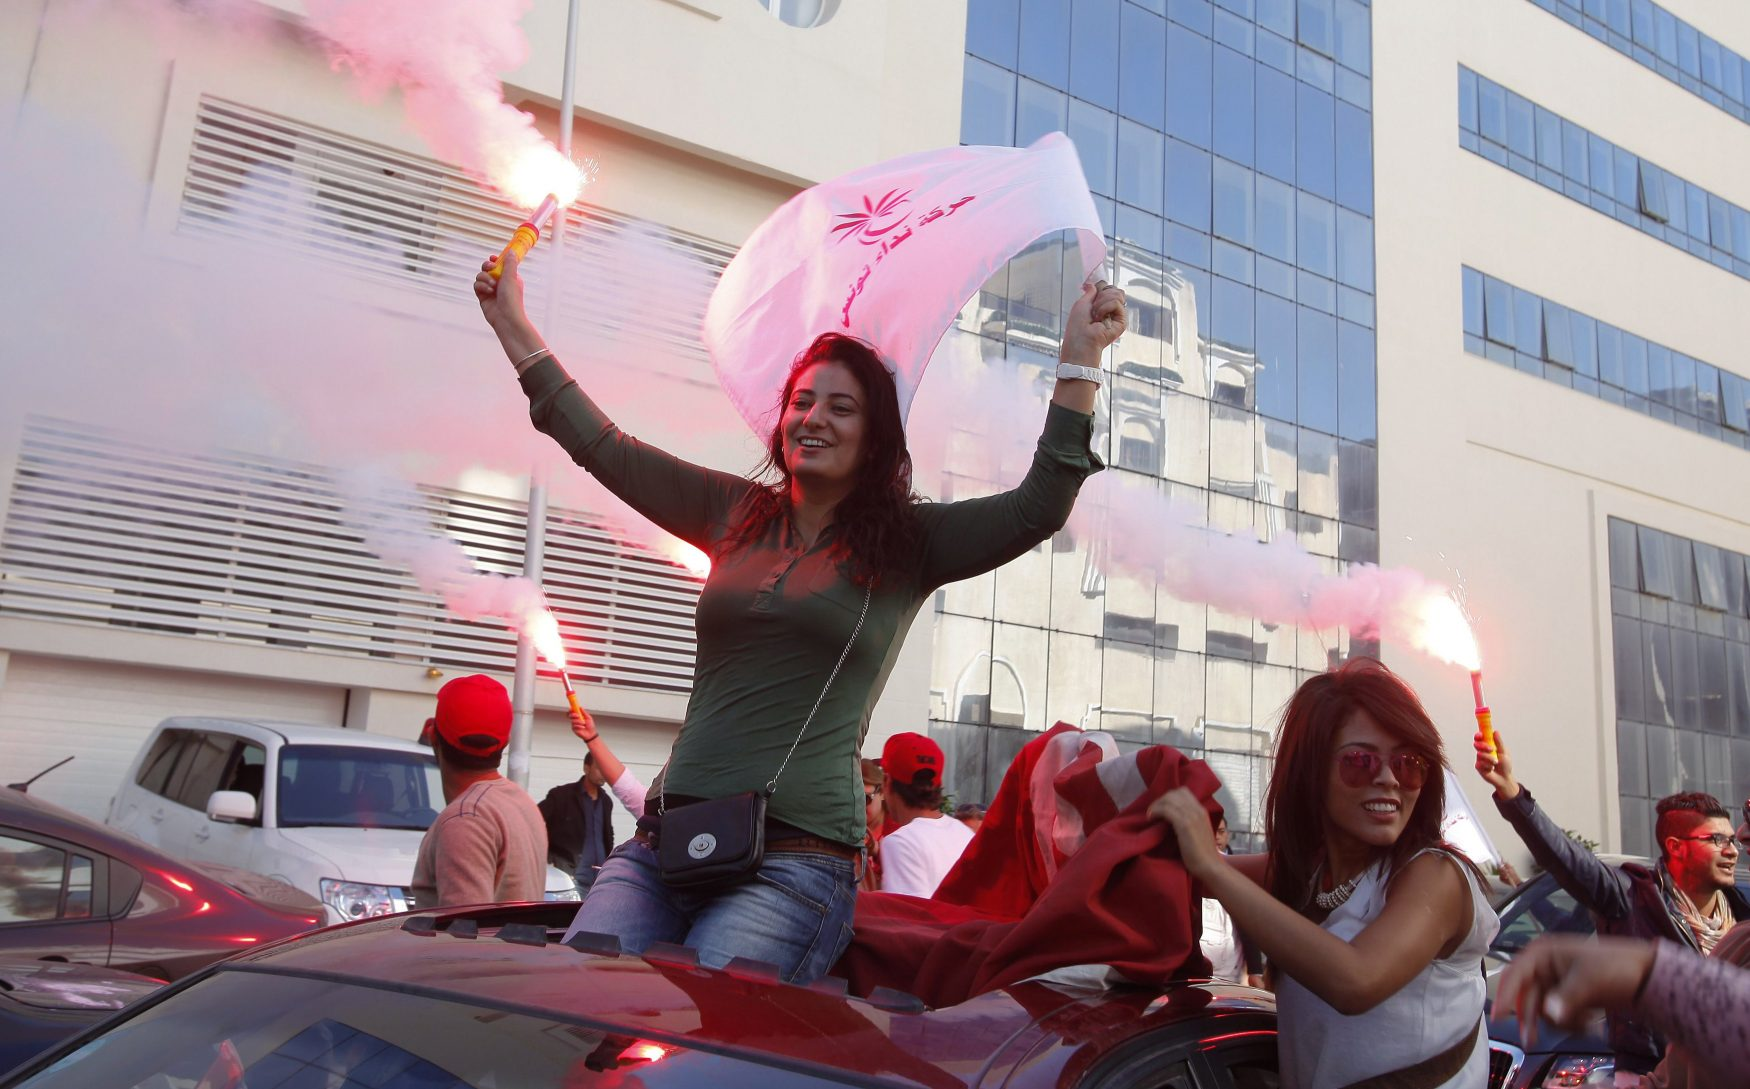 Supporters  of the Nida Tounes (Call of Tunisia) secular party movement wave flags and shout slogans outside Nidaa Tounes headquarters in Tunis